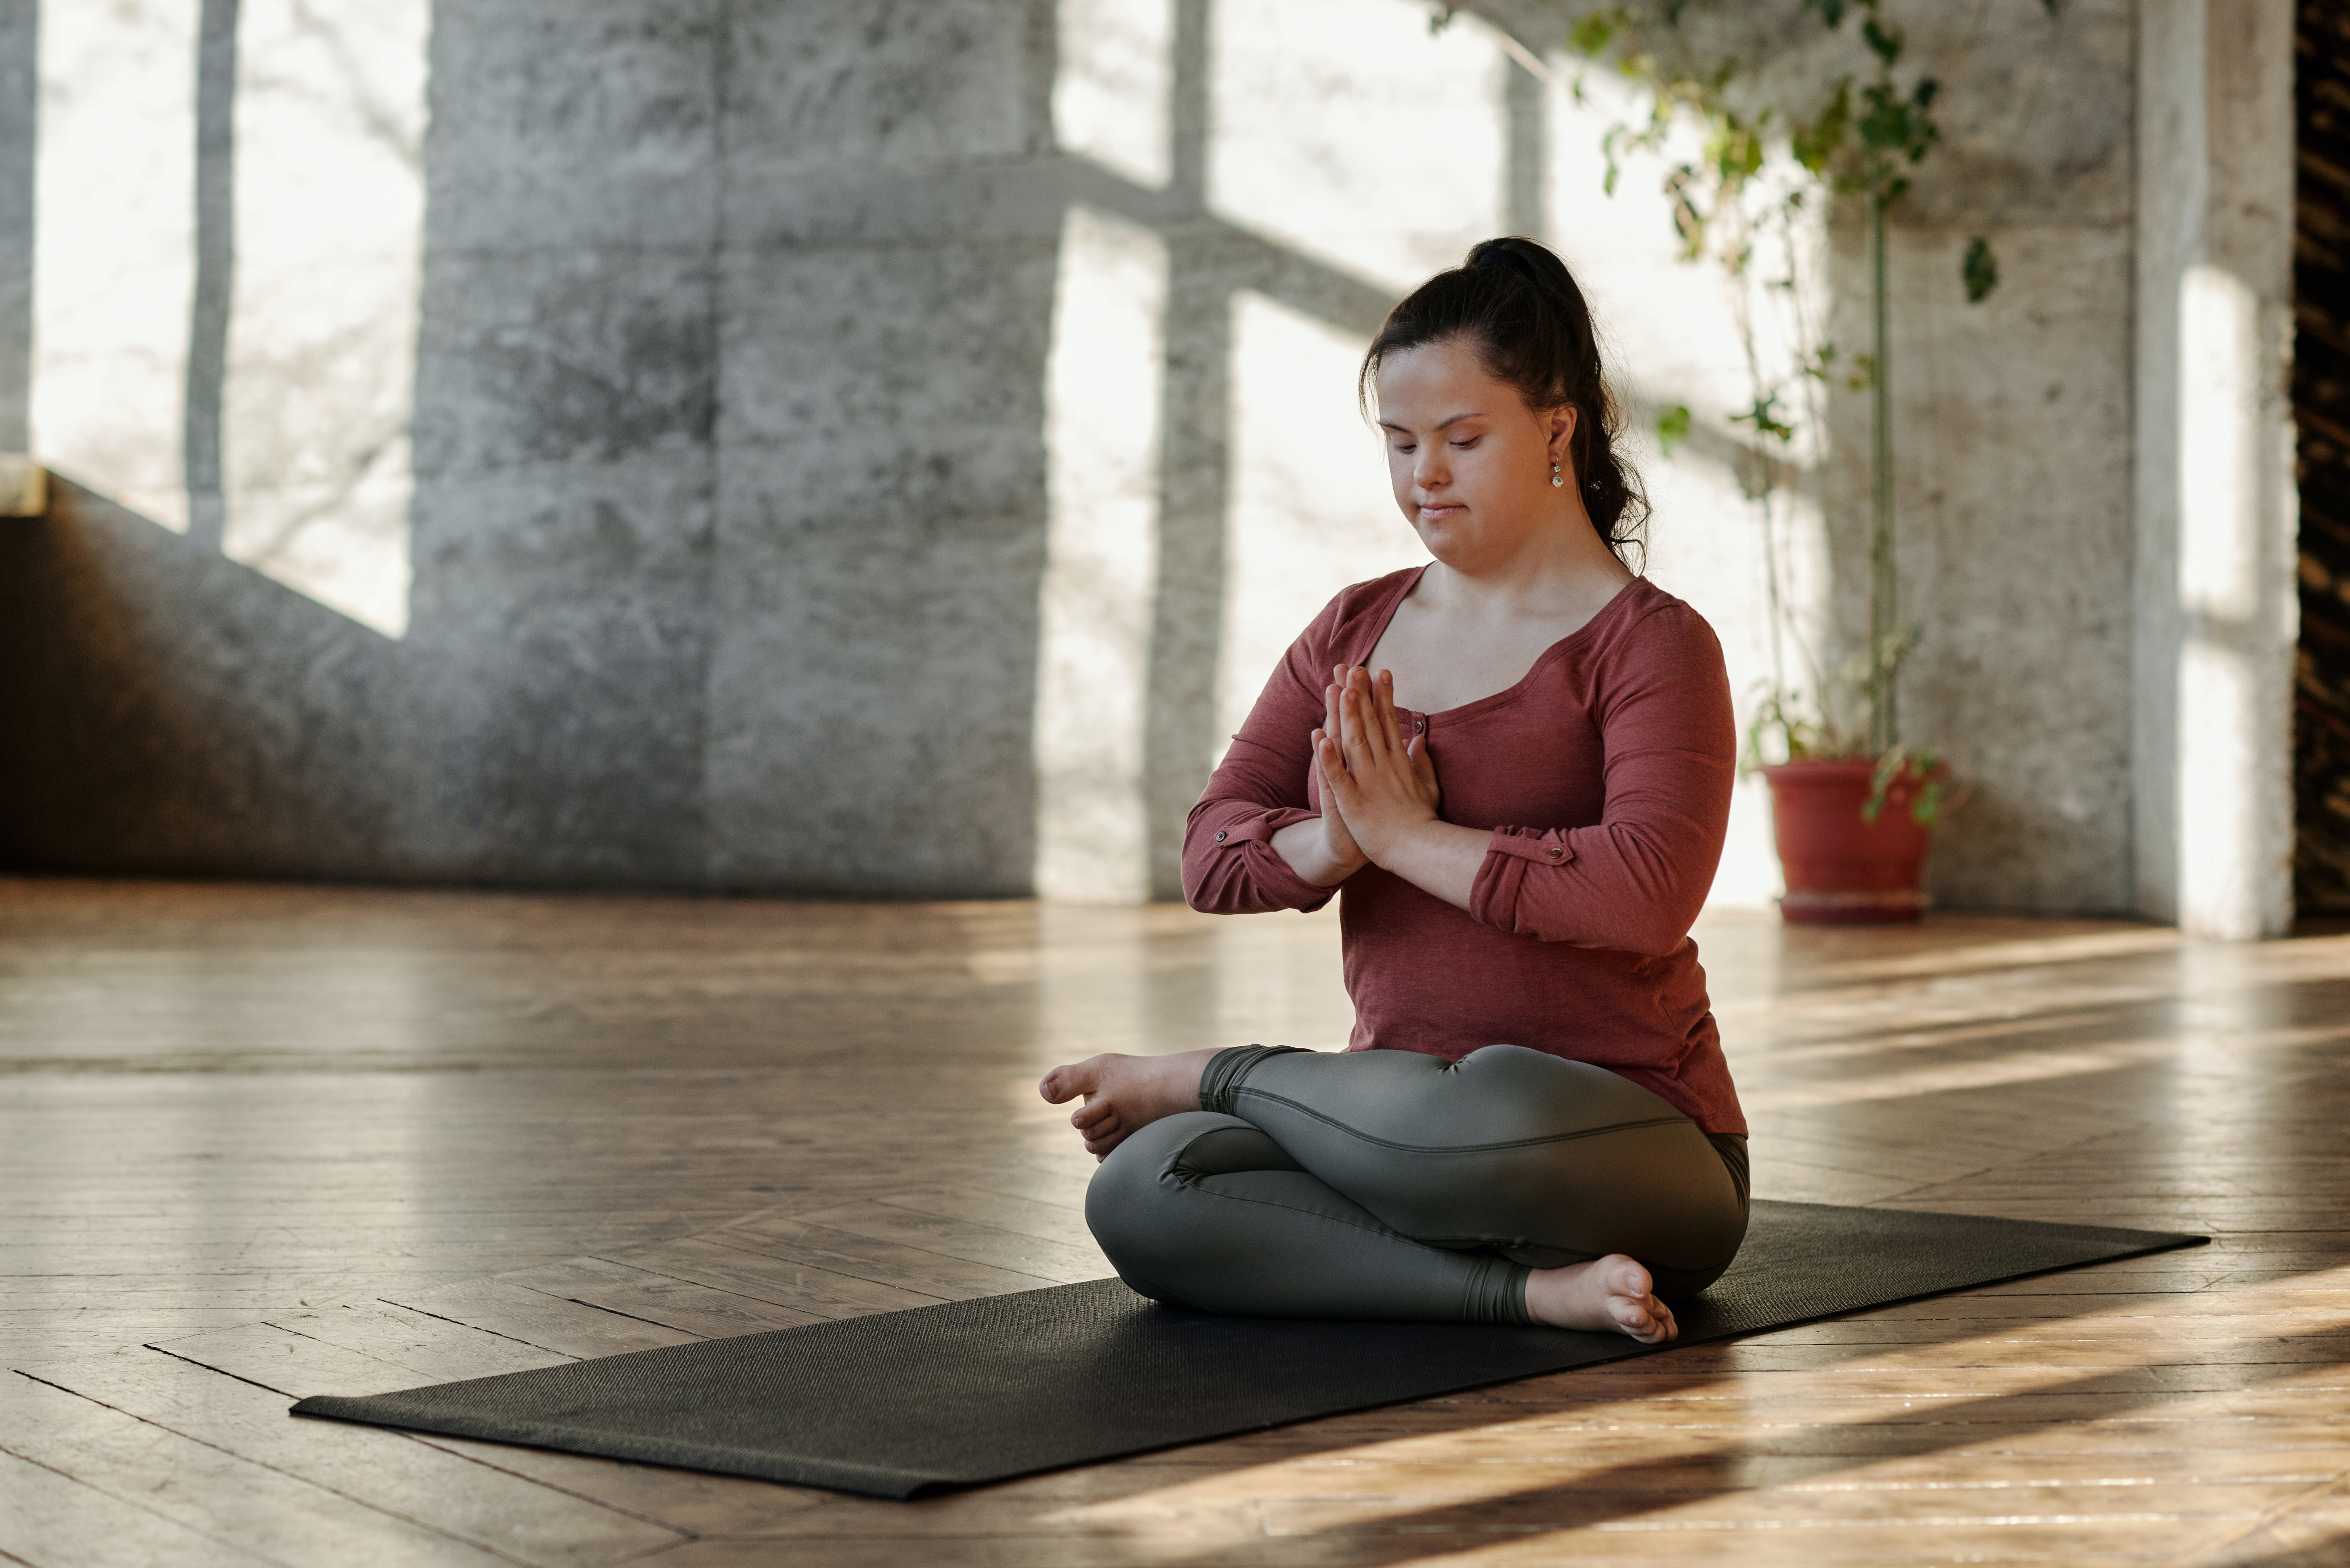 a young woman in a meditative posture on a yoga mat in a yoga studio